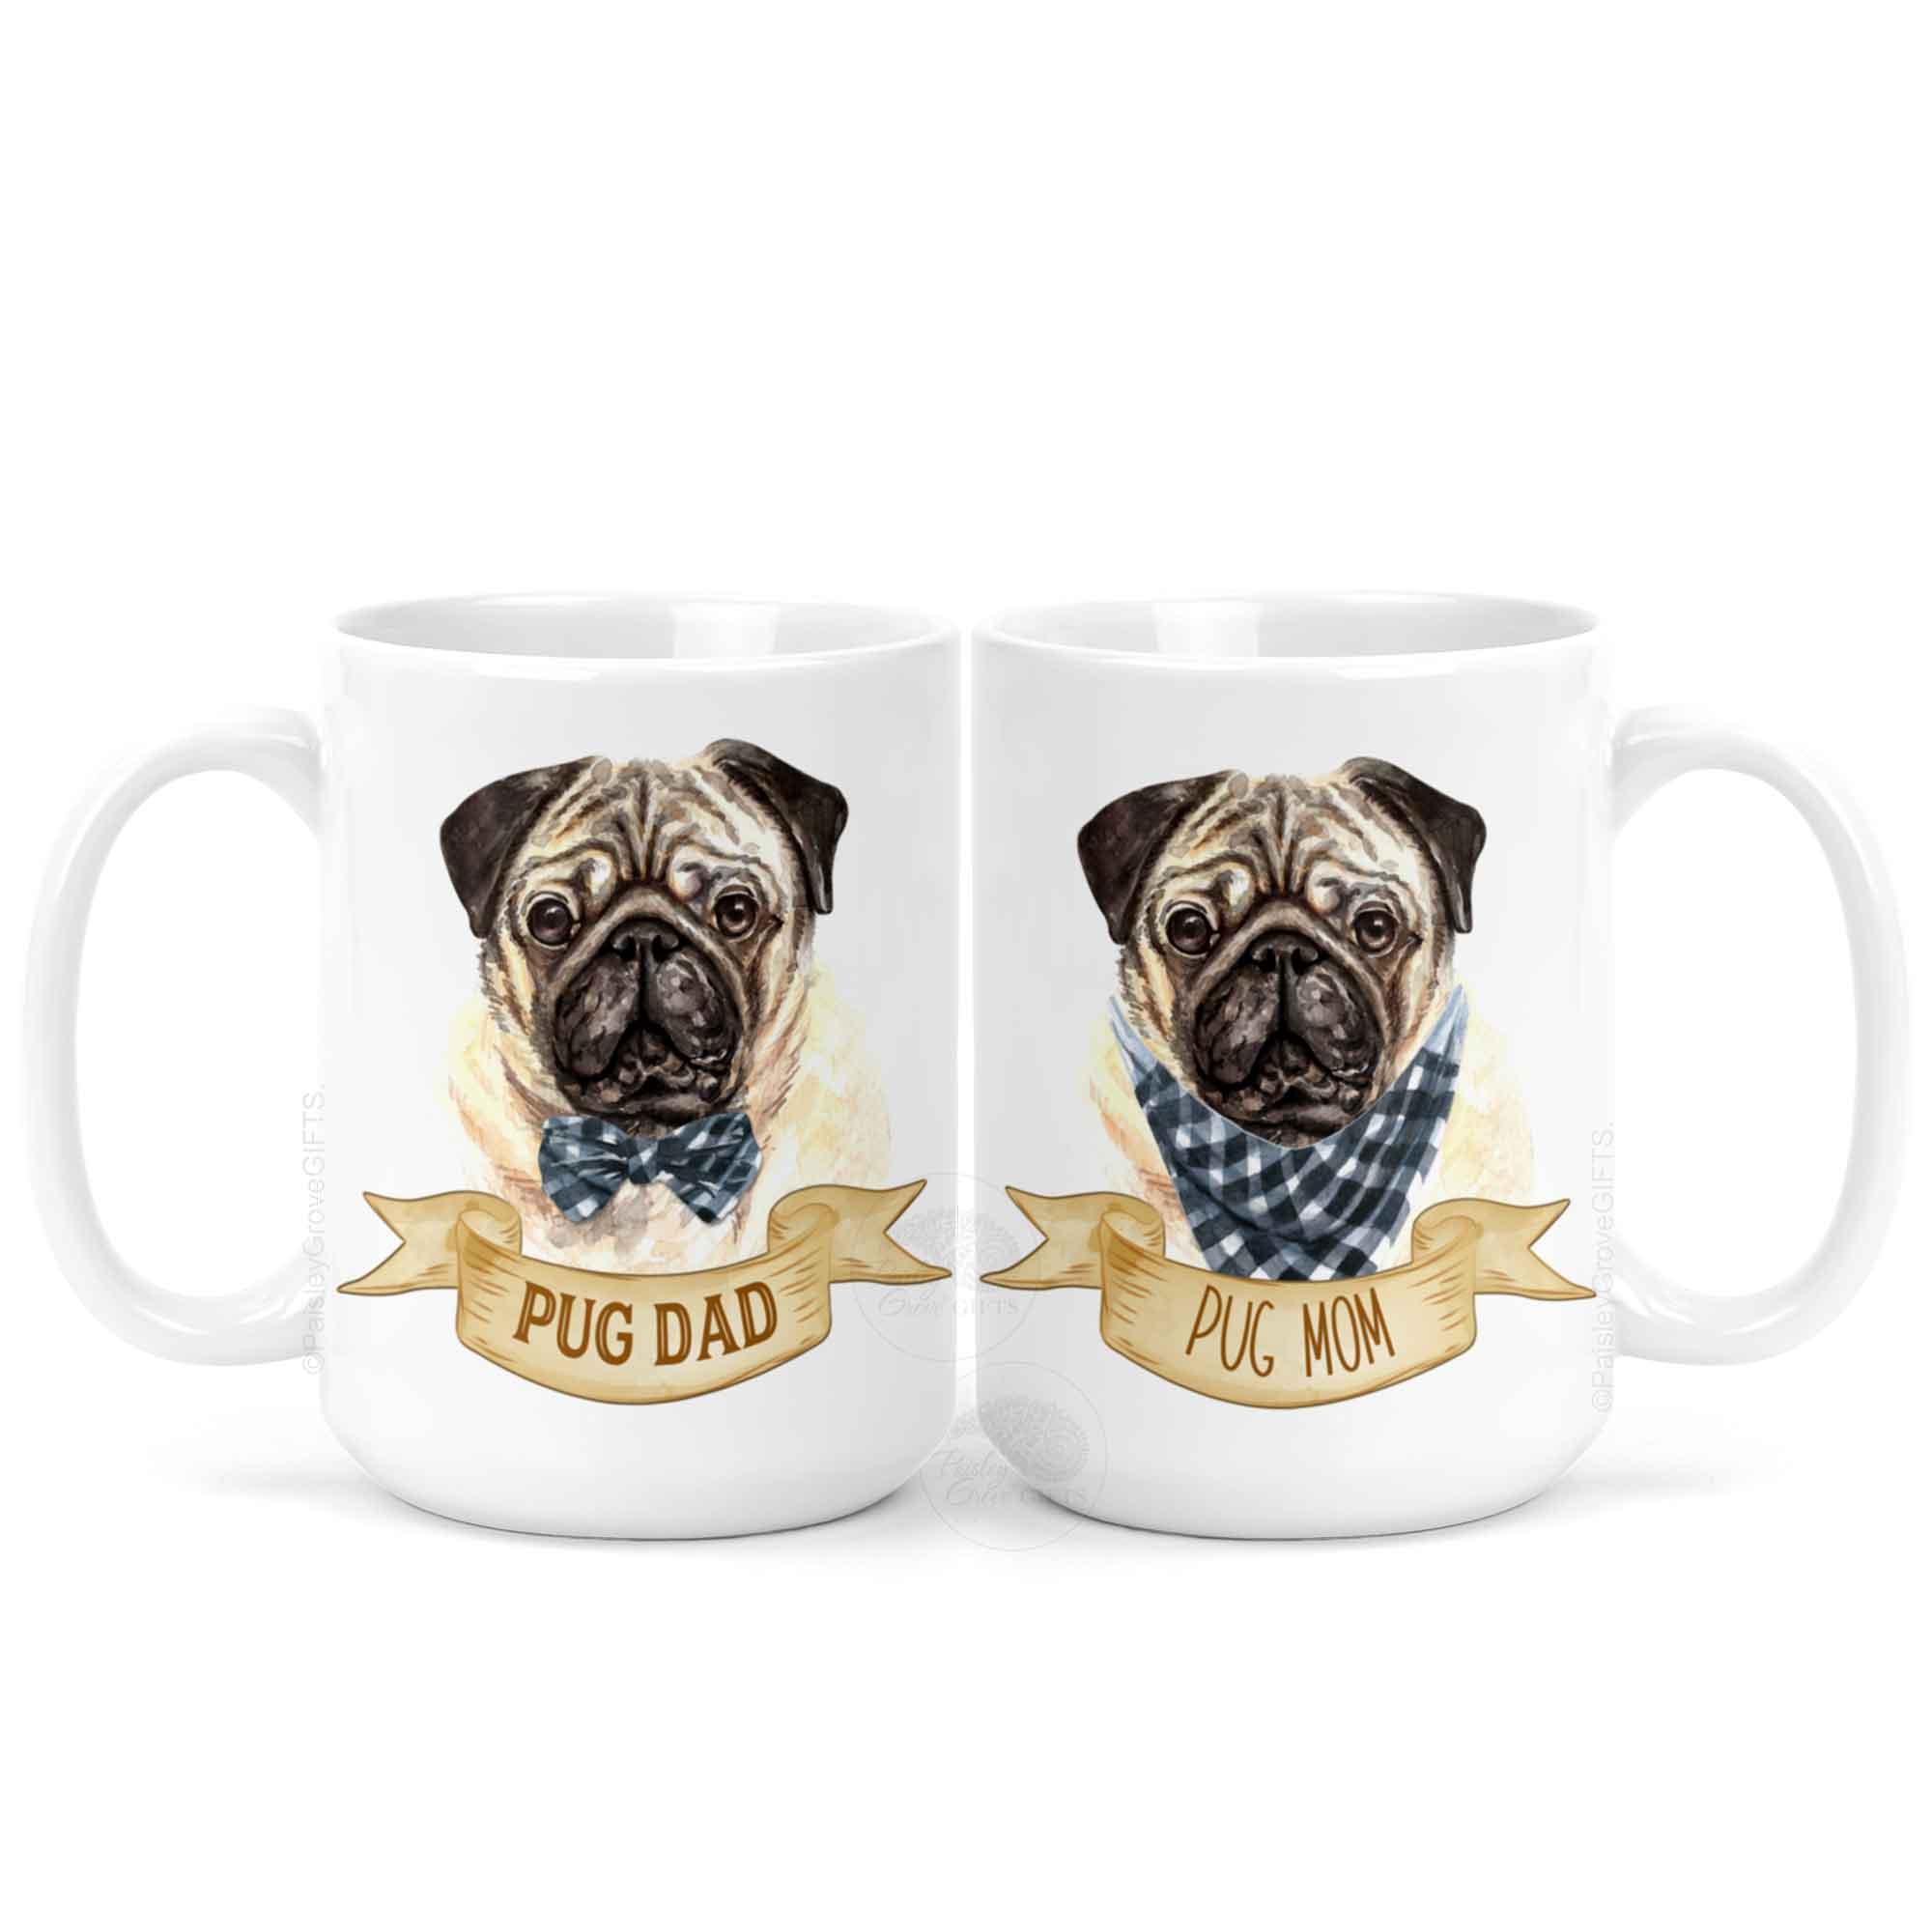 CopyrightPaisleyGroveGIFTS P009c1c3 Pug Mom and Pug Dad Ceramic Coffee Mug in 11 or 15 oz with Watercolor Pug